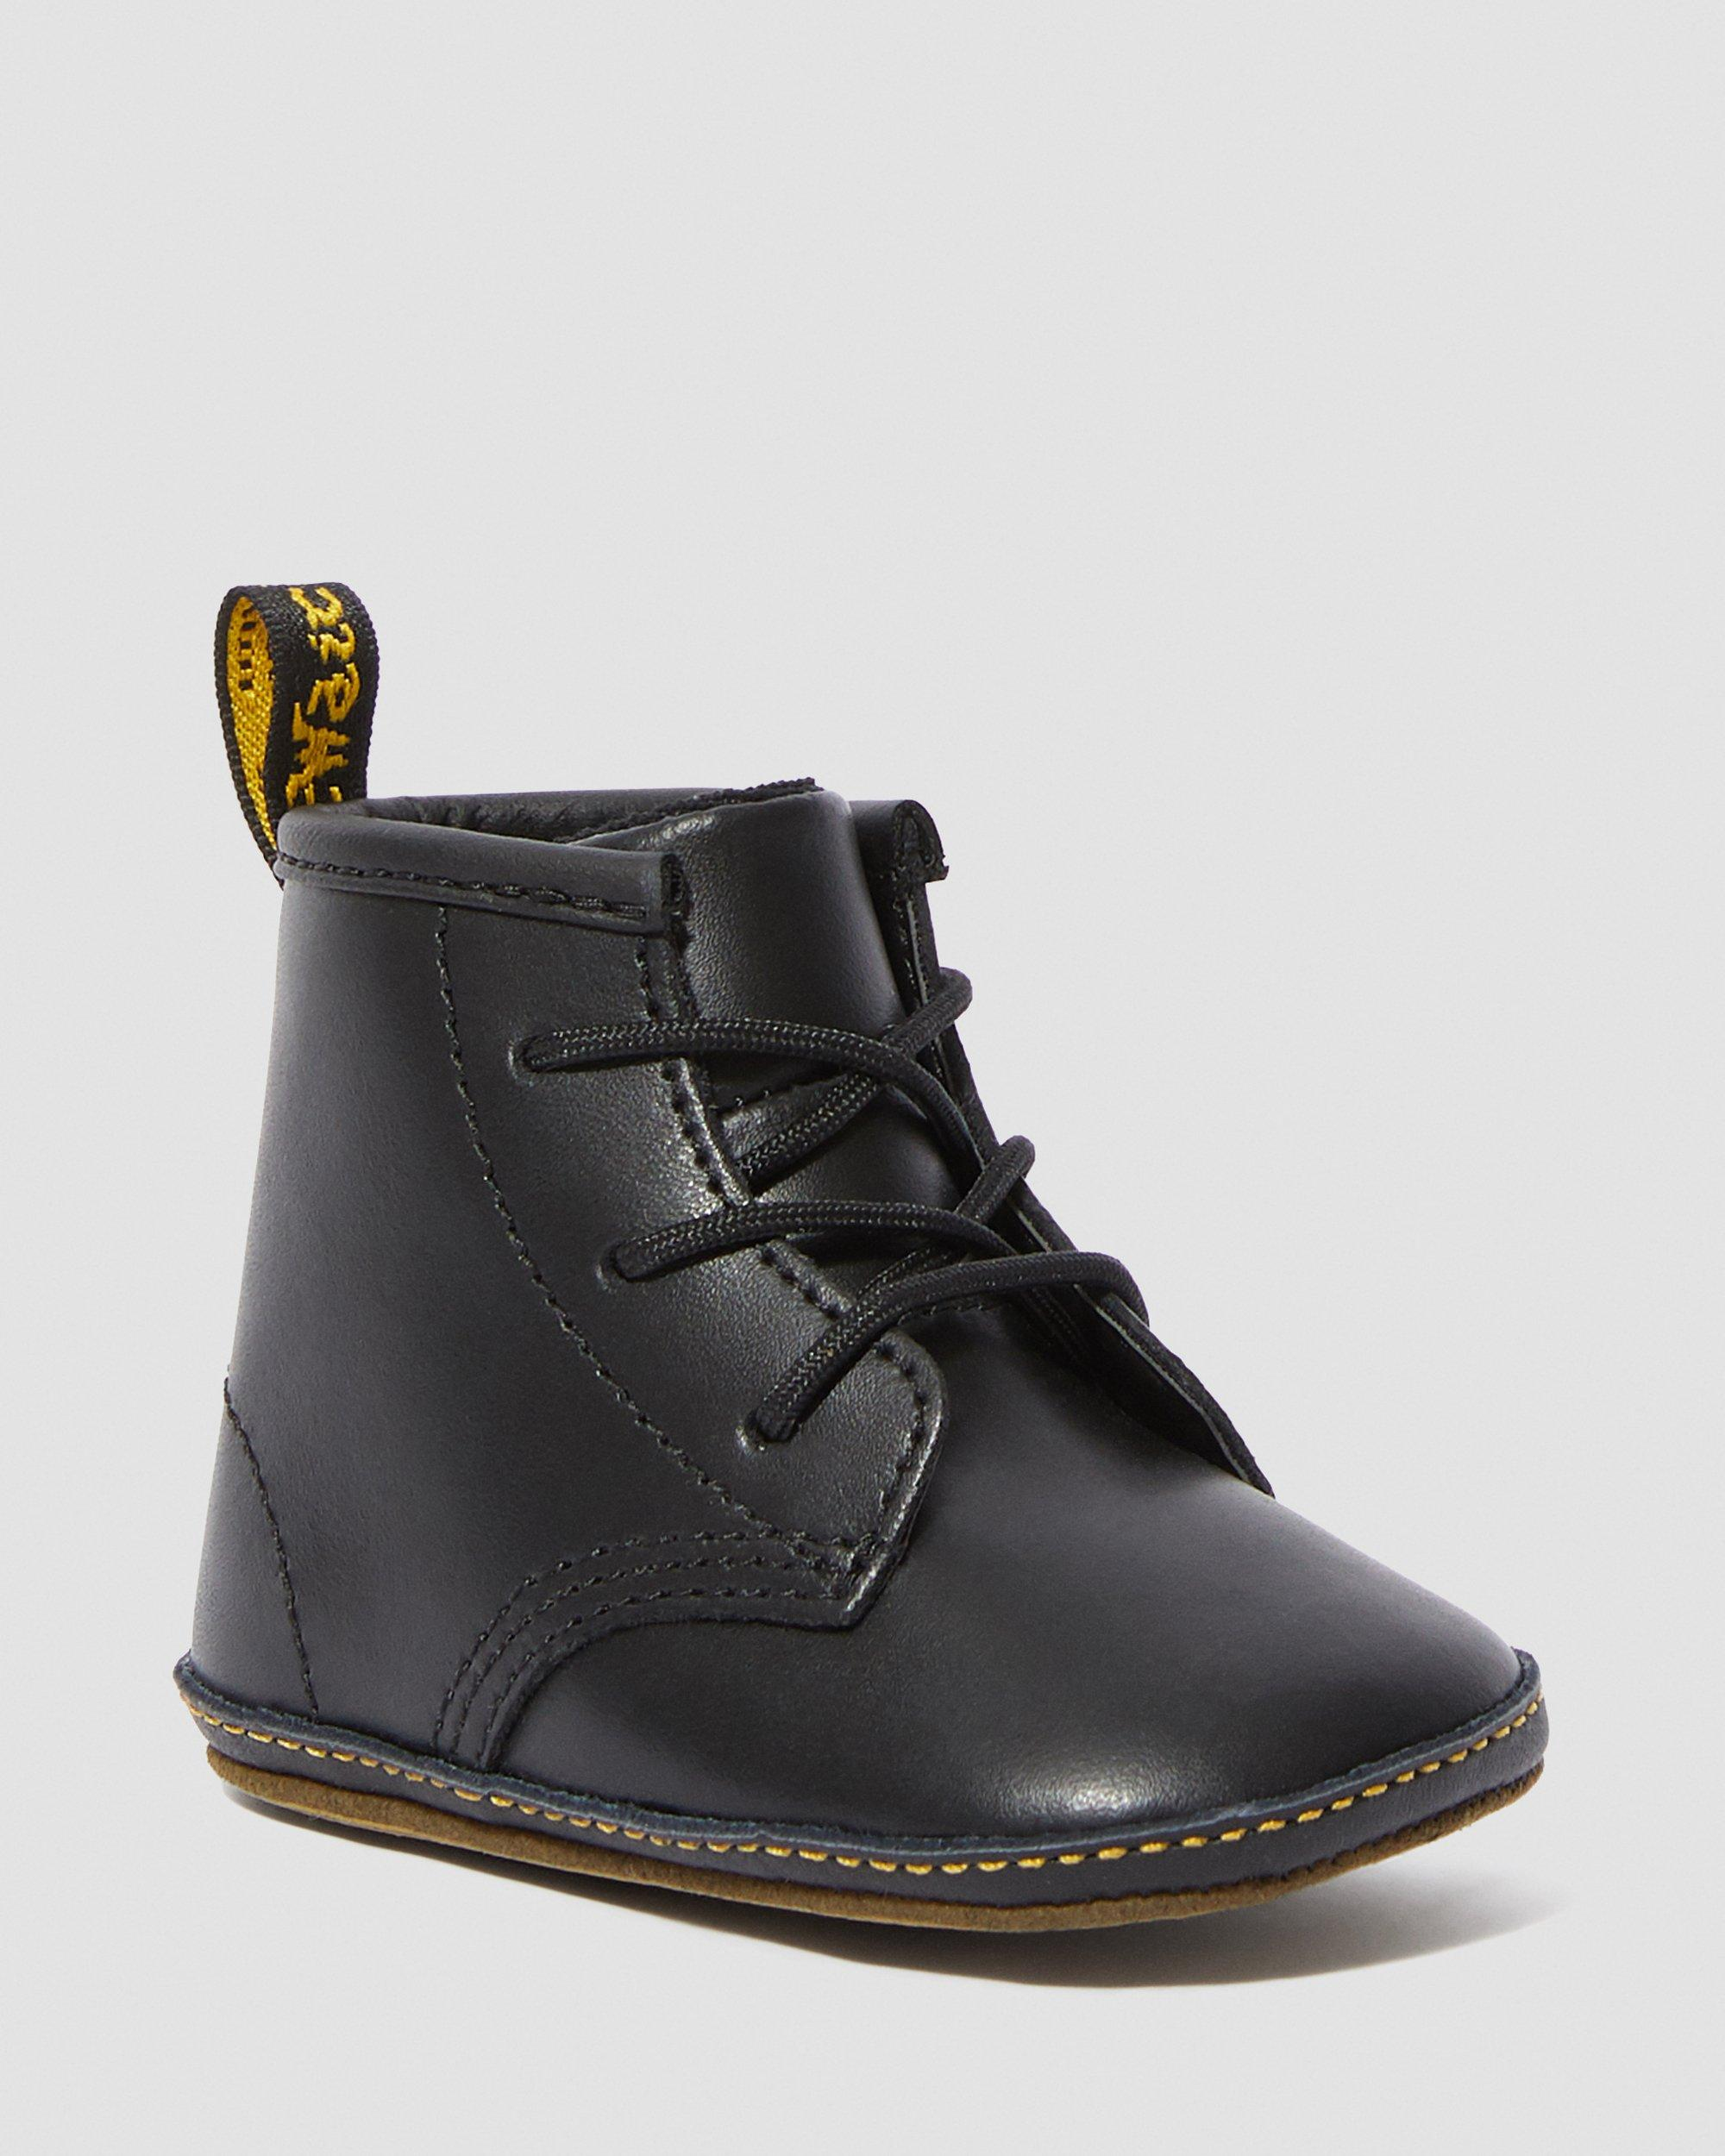 Newborn Crib Shoes Dr Martens Newborn 1460